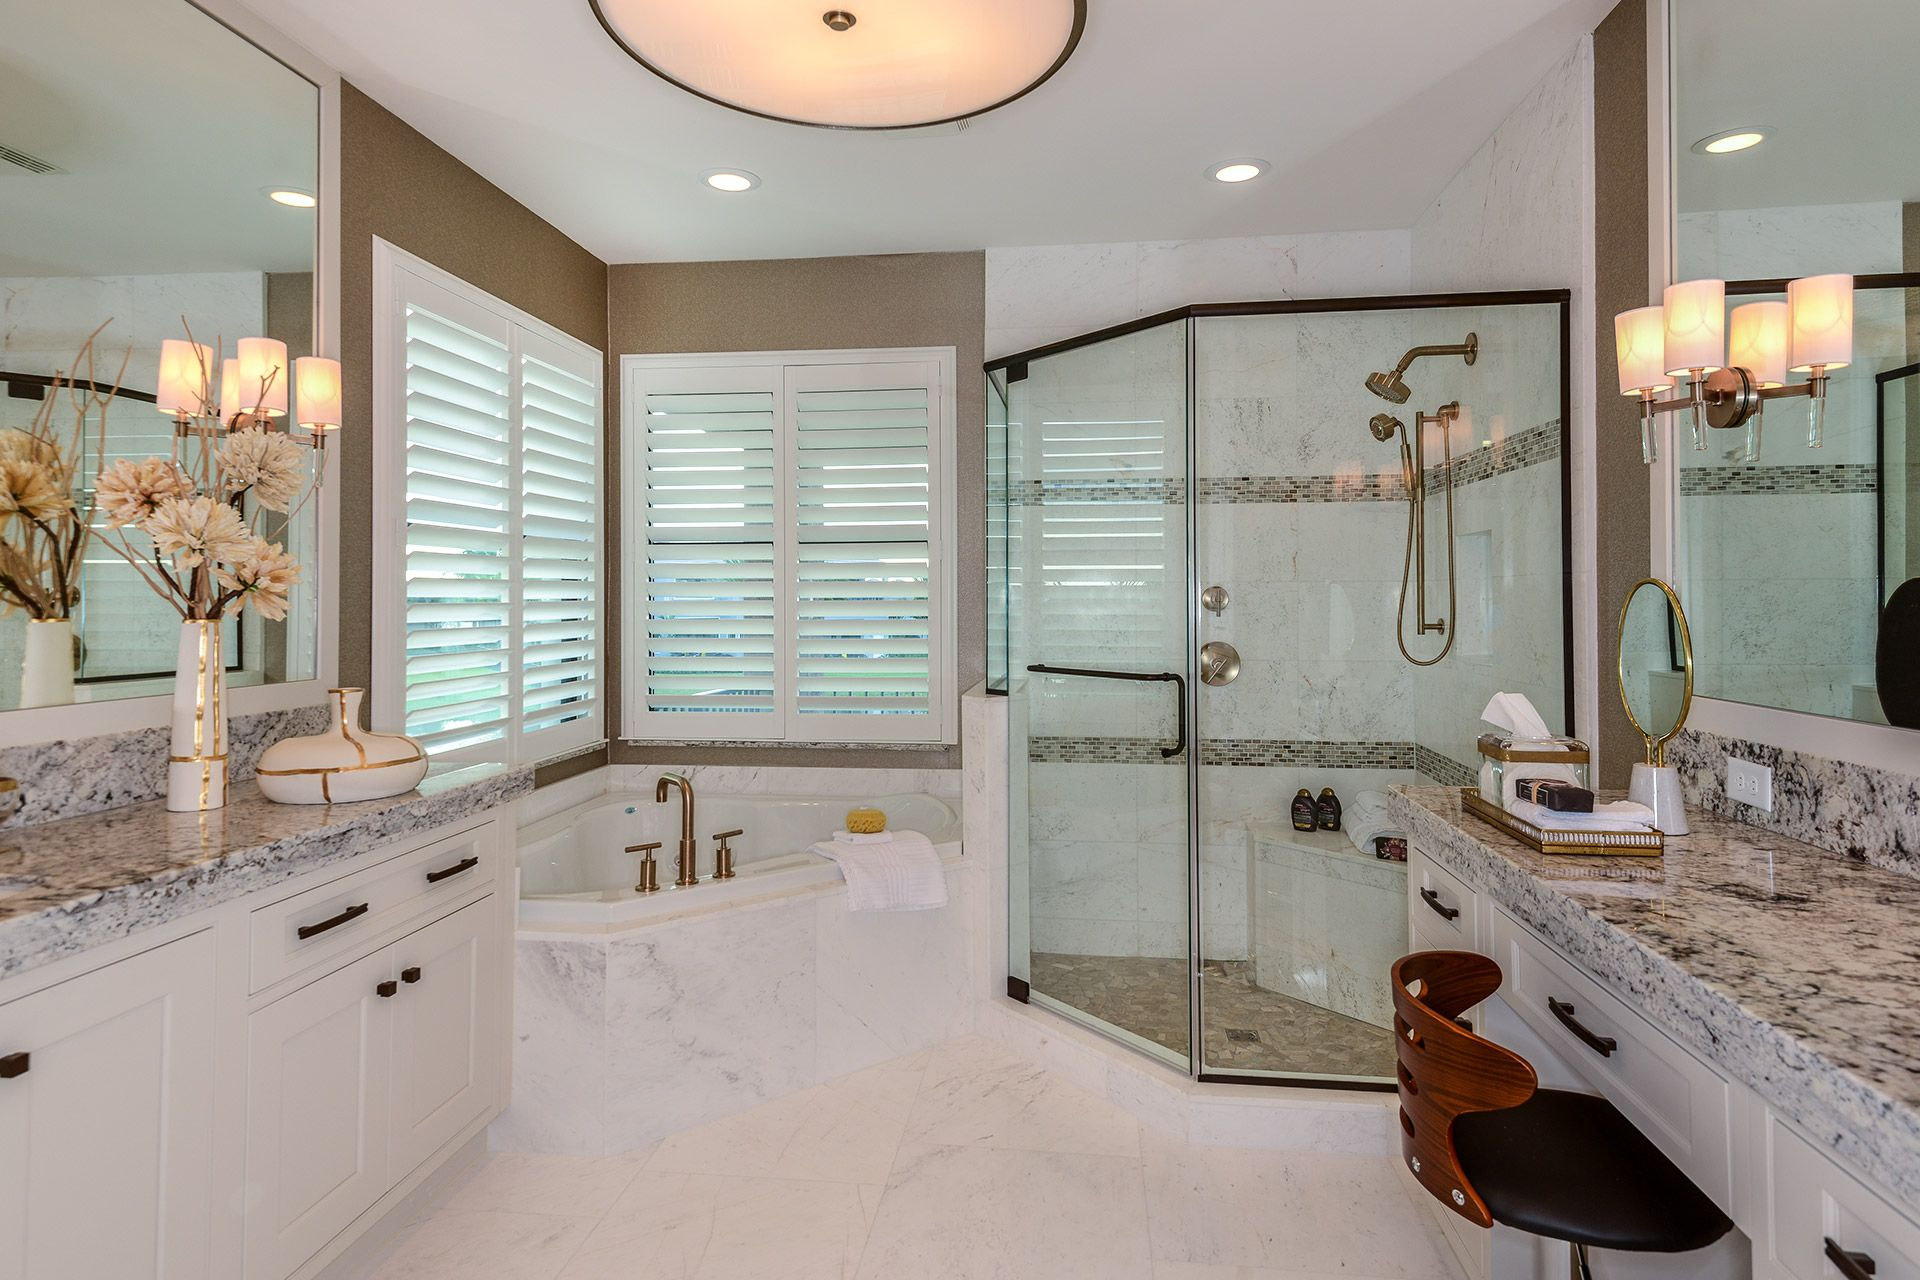 Bathroom featured in the Bassano Grande Contemporary By GL Homes in Palm Beach County, FL